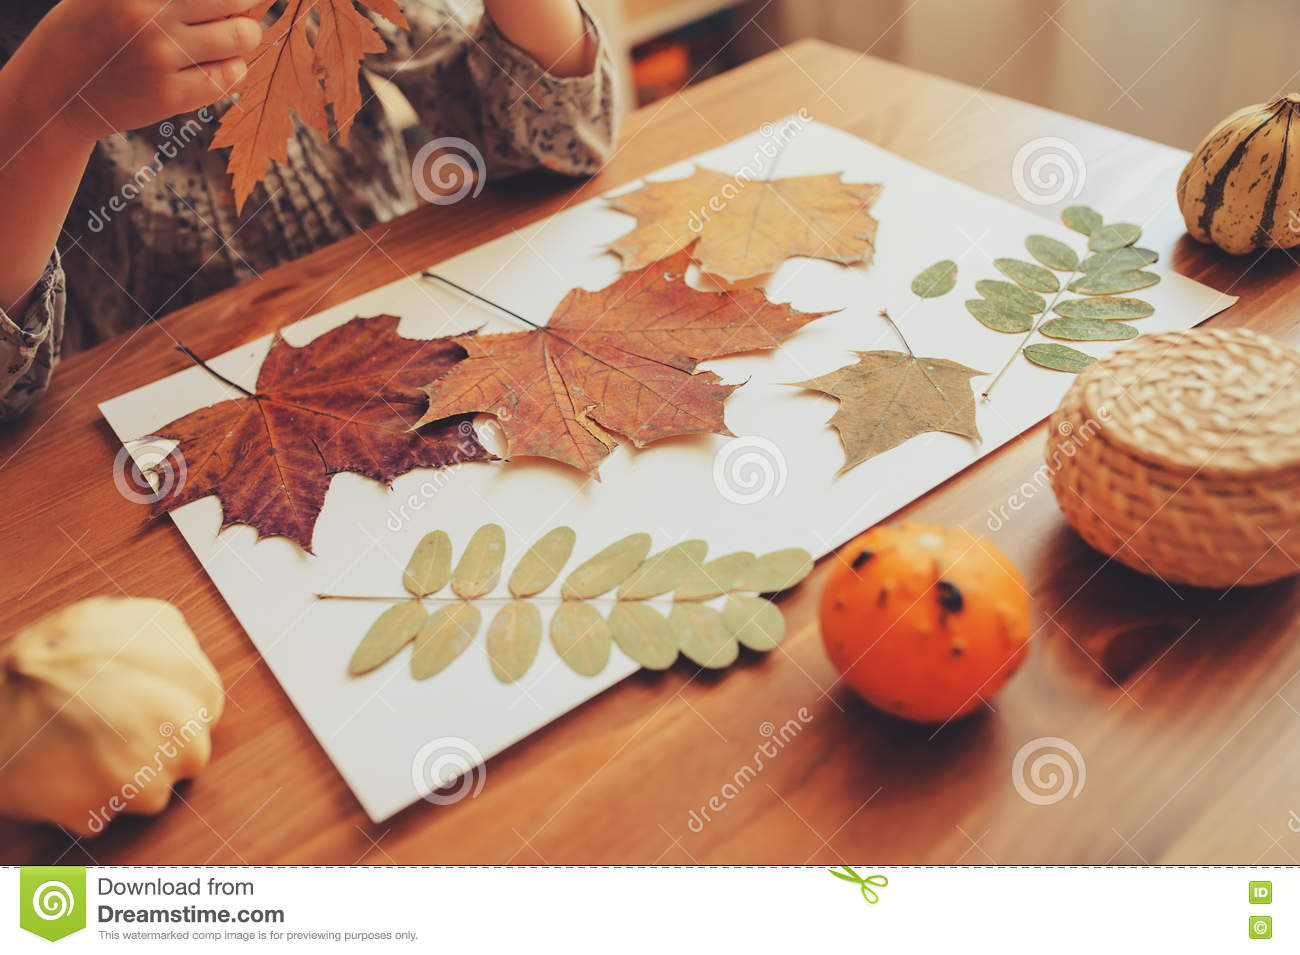 The editors of publications international, ltd. Child Girl Making Herbarium From Dried Leaves At Home Nature Art And Craft Stock Photo Image Of Early Collage 71686088